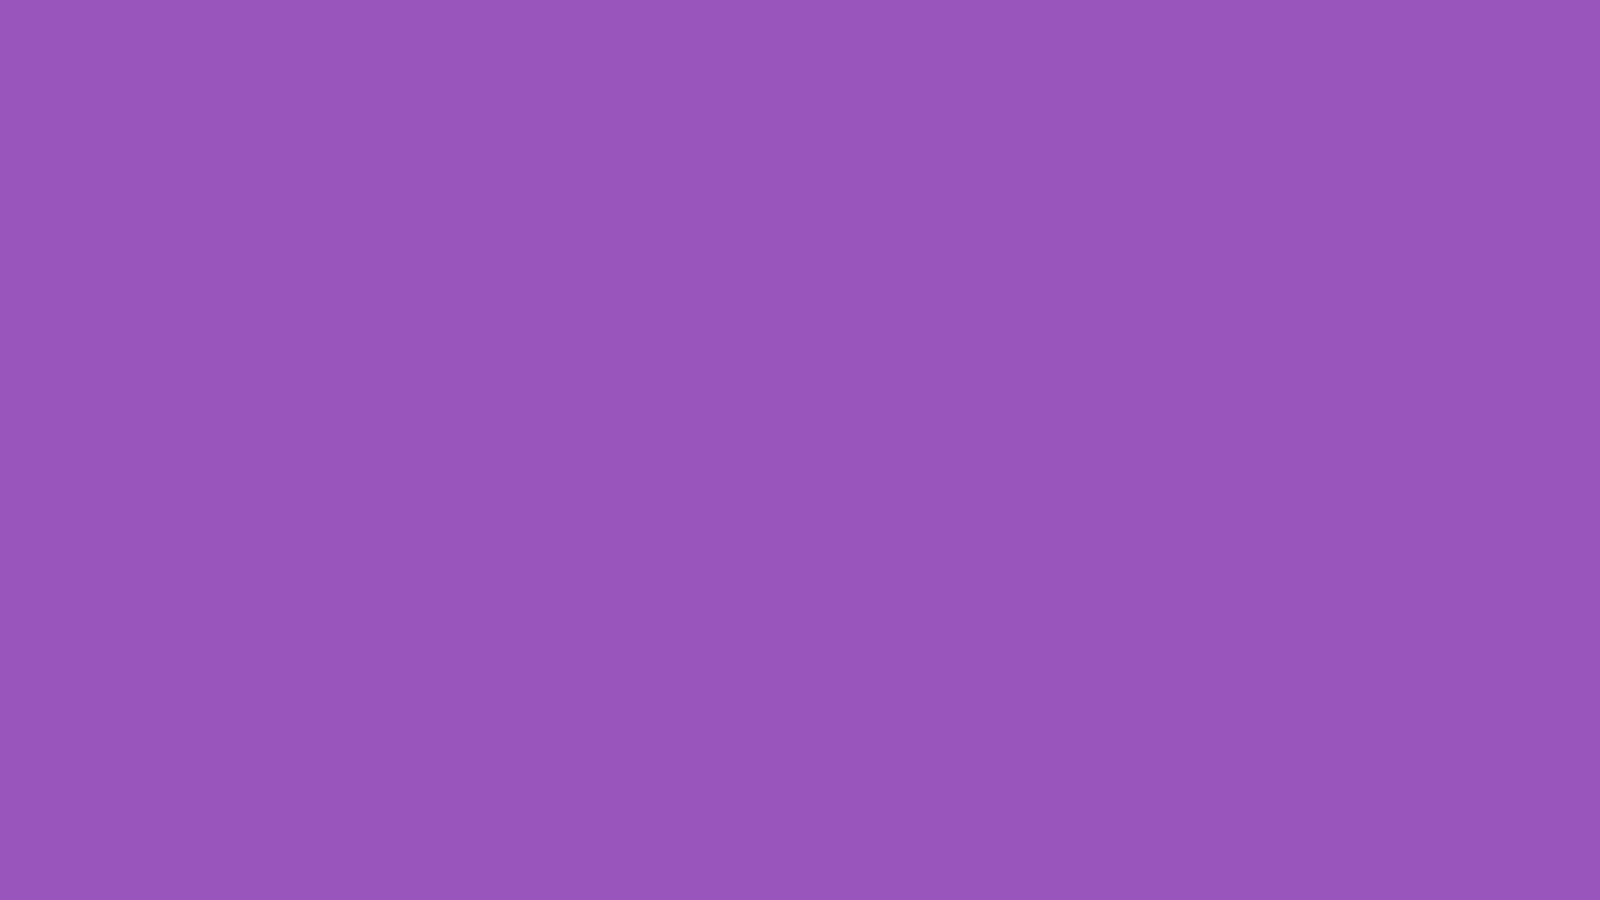 1600x900 Deep Lilac Solid Color Background